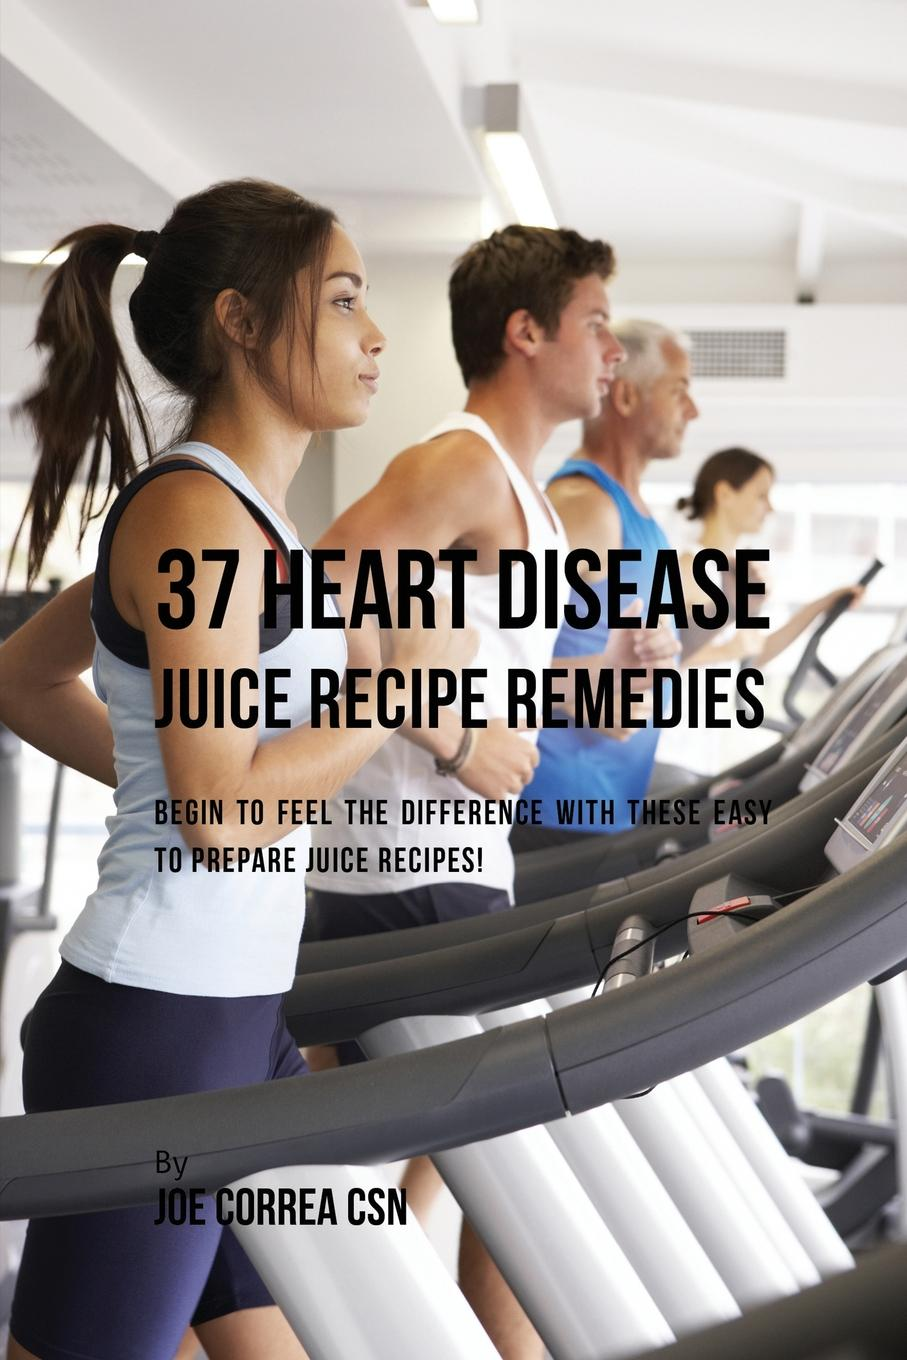 Joe Correa 37 Heart Disease Juice Recipe Remedies. Begin to Feel the Difference with These Easy to Prepare Juice Recipes. carole warnes a adult congenital heart disease